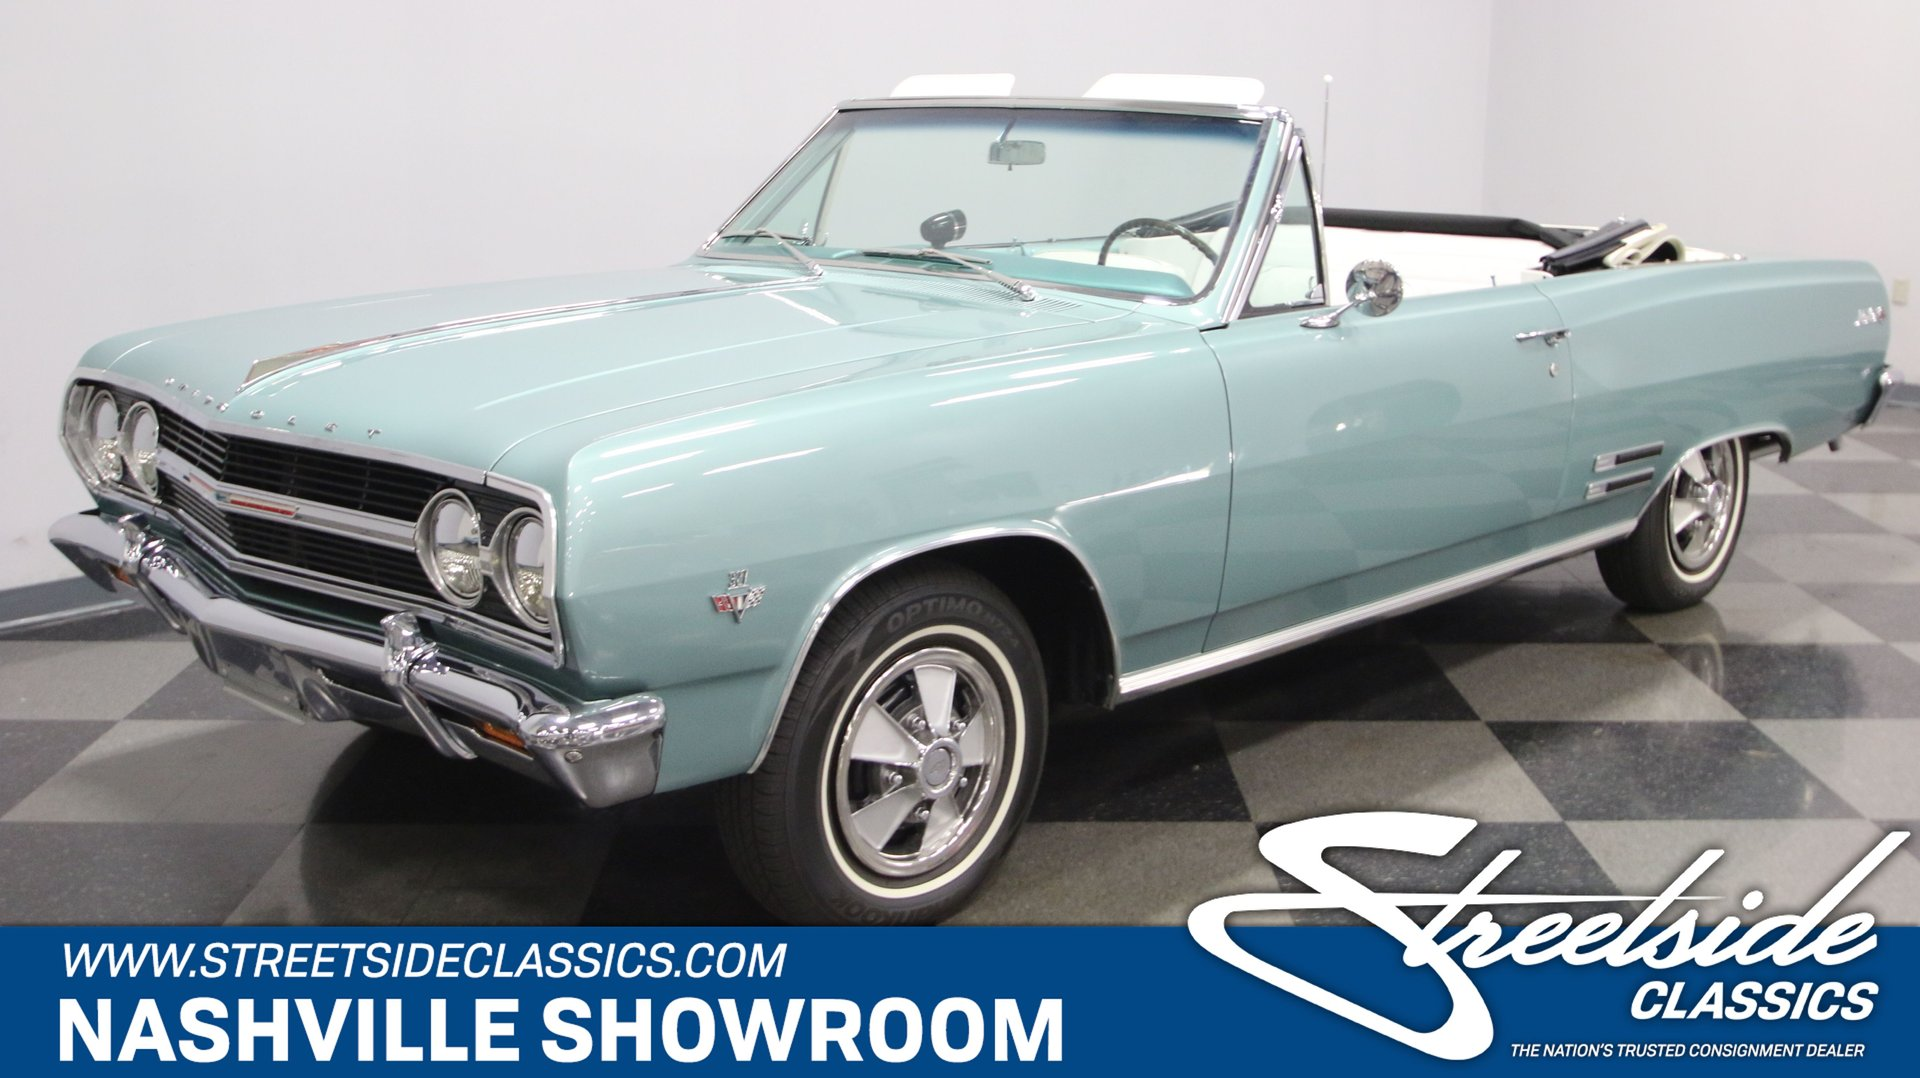 1965 Chevrolet Malibu Classic Cars For Sale Streetside Classics The Nation S 1 Consignment Dealer